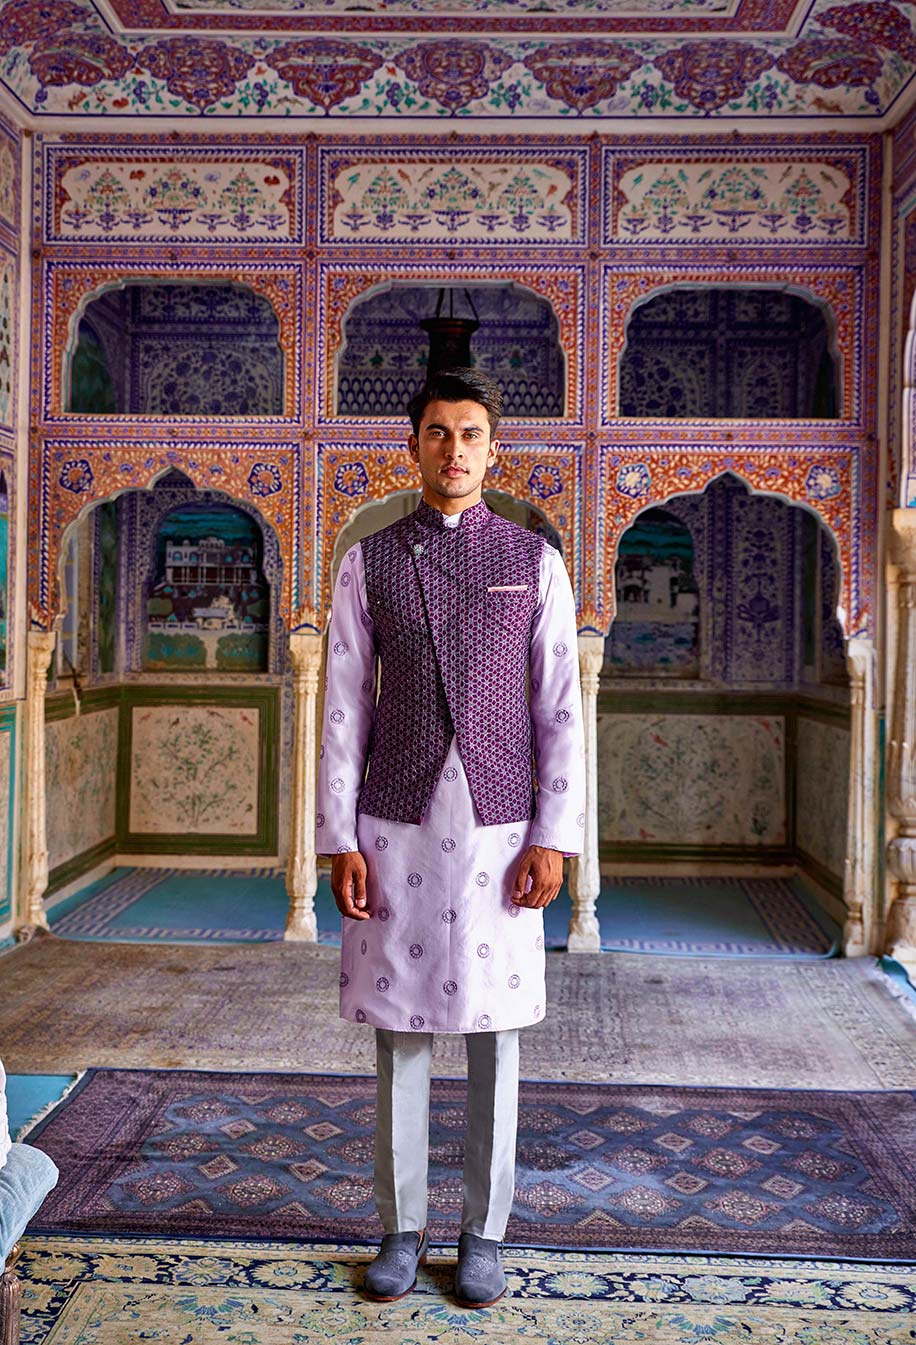 Groom in sherwani